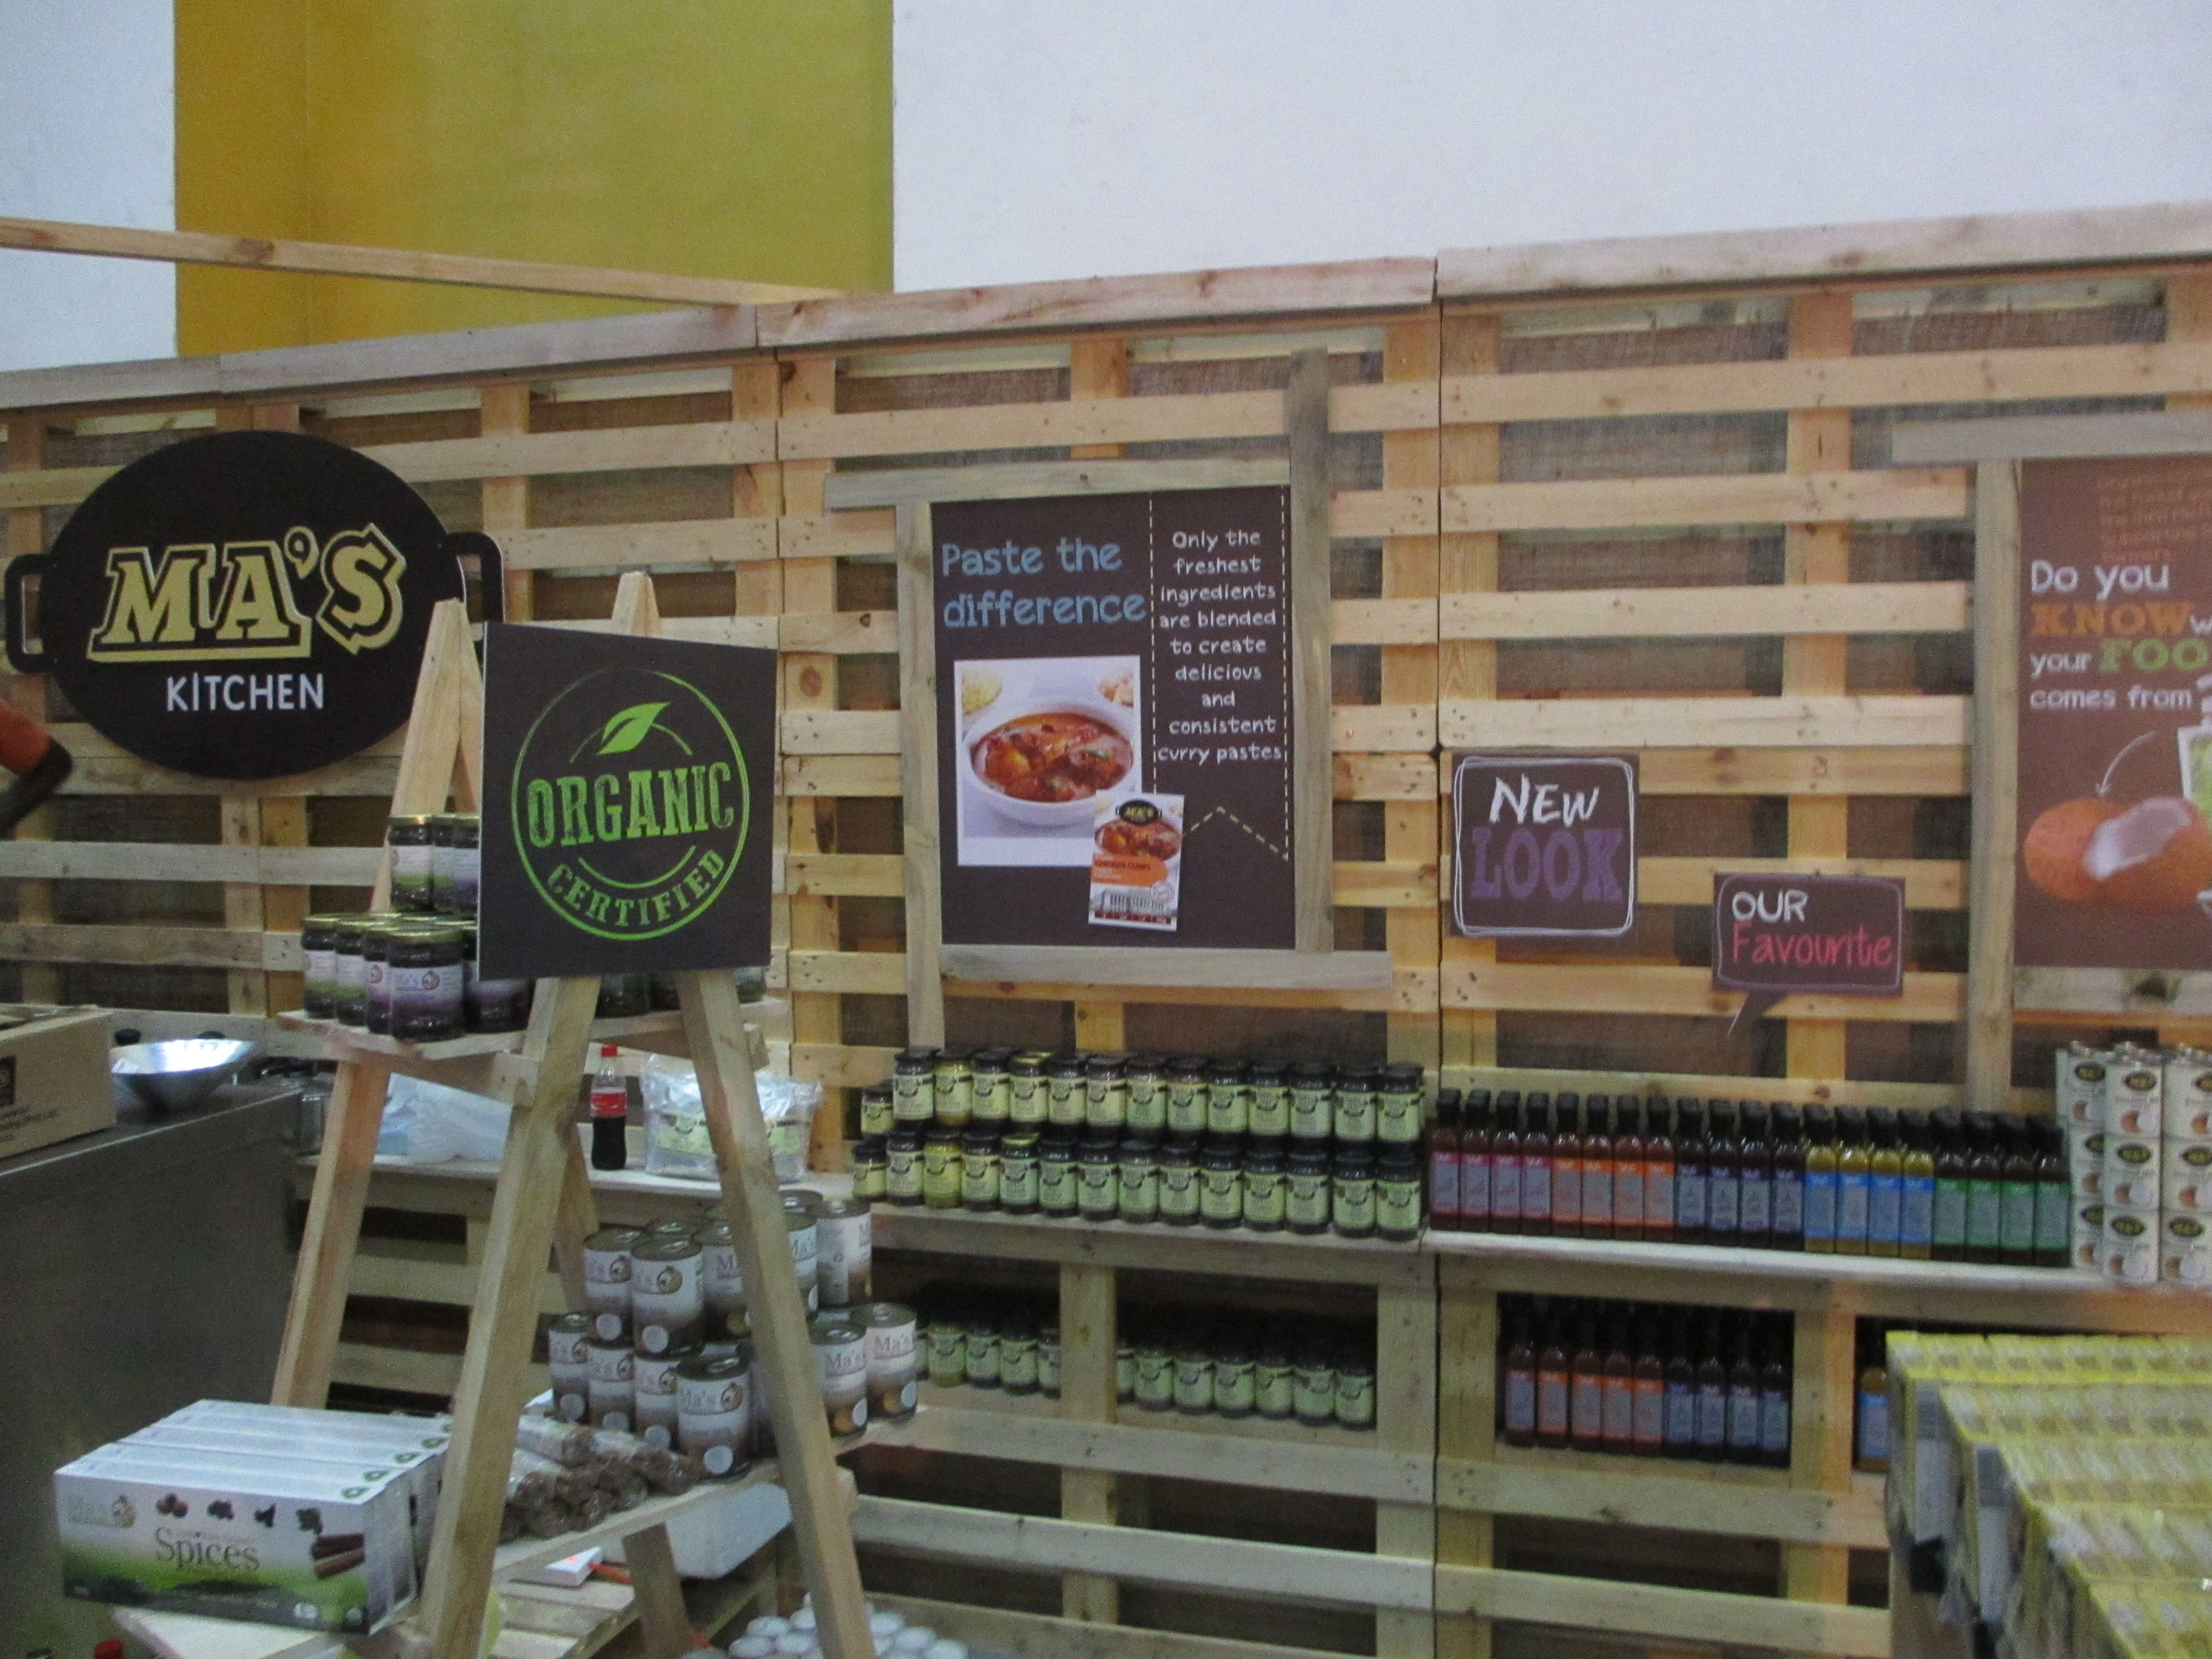 Exhibition Stall Builders In Sri Lanka : Pallet exhibition stall booth shelves ma s kitchen